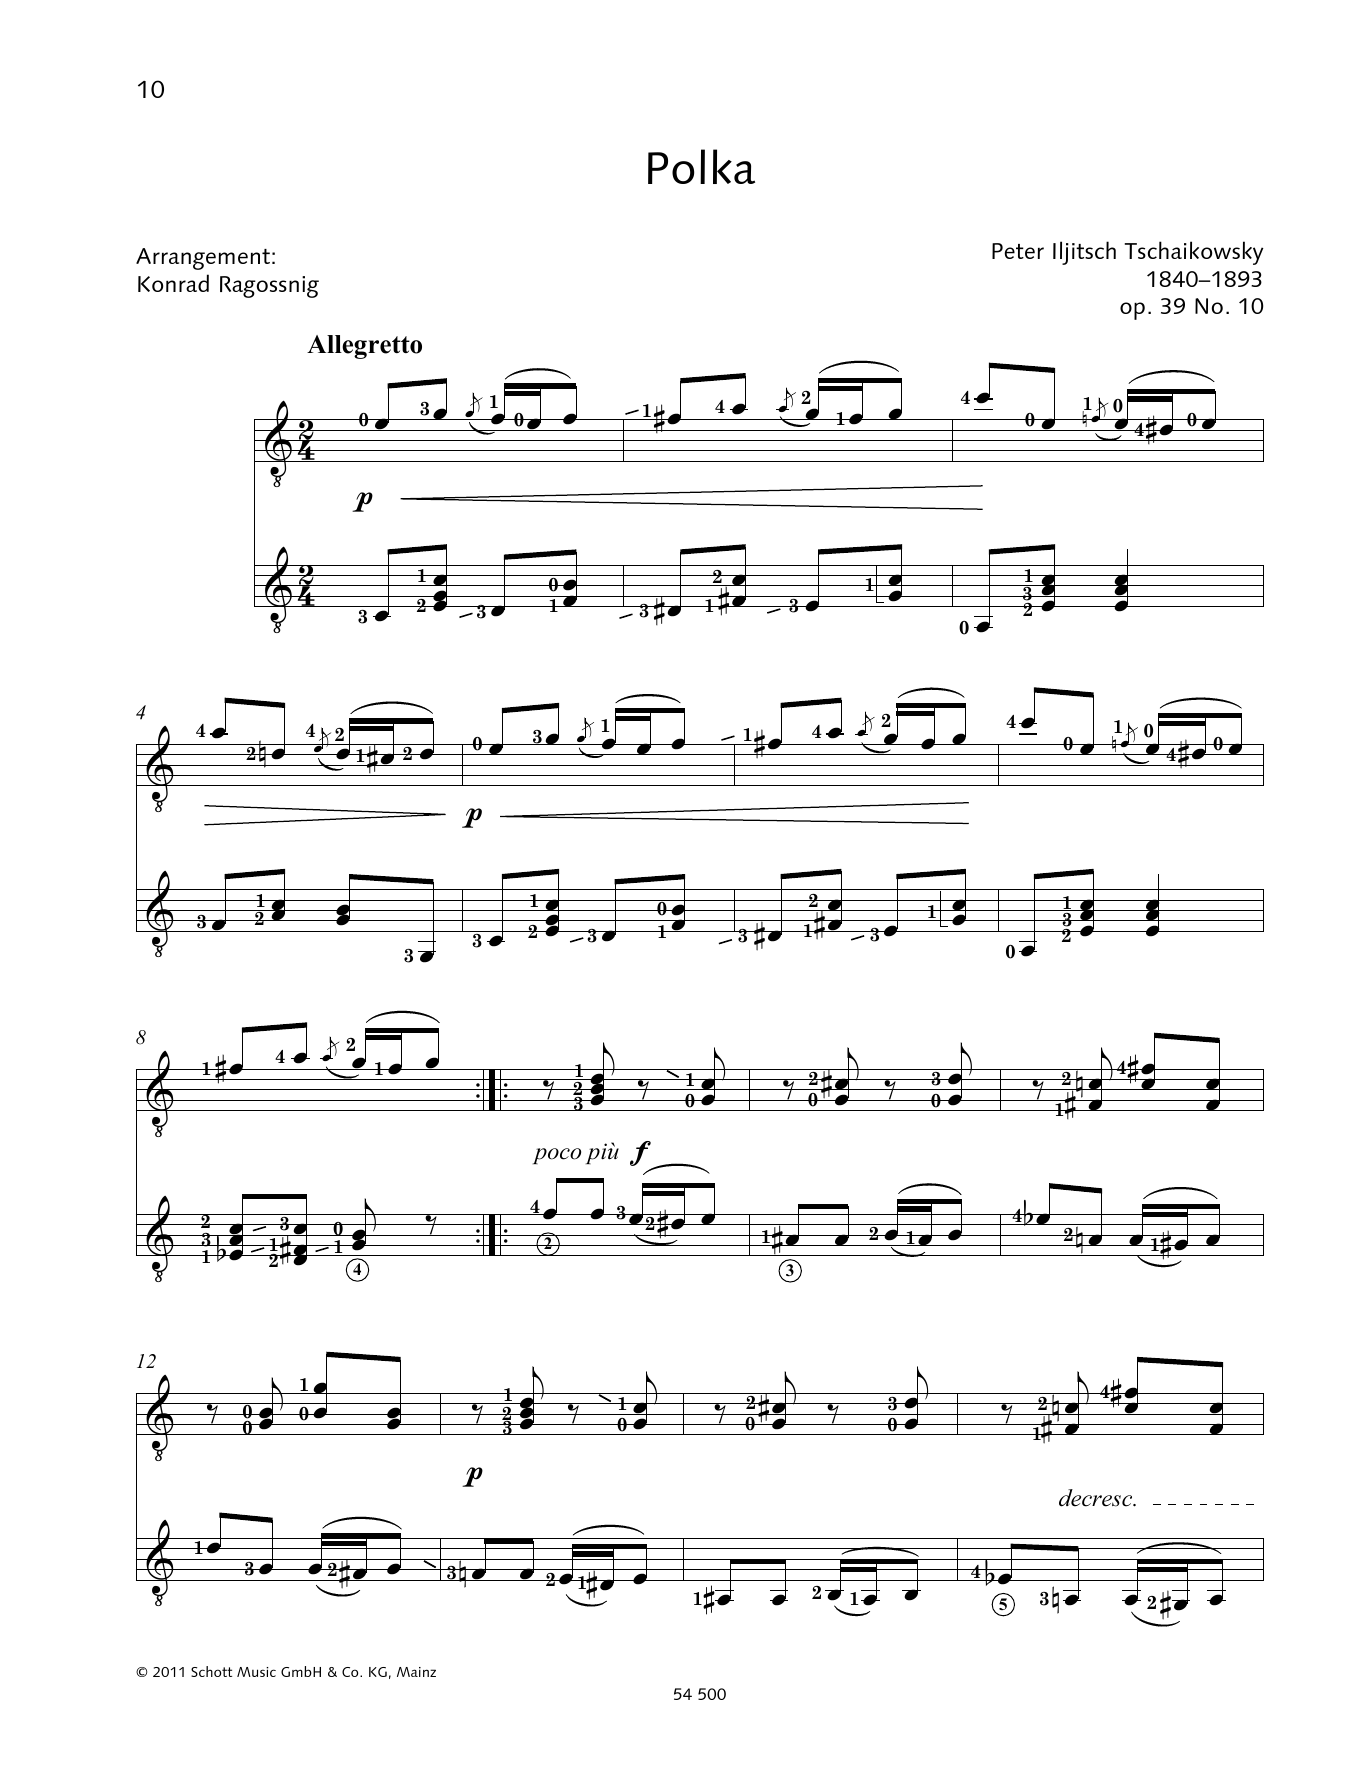 Polka - Full Score Sheet Music